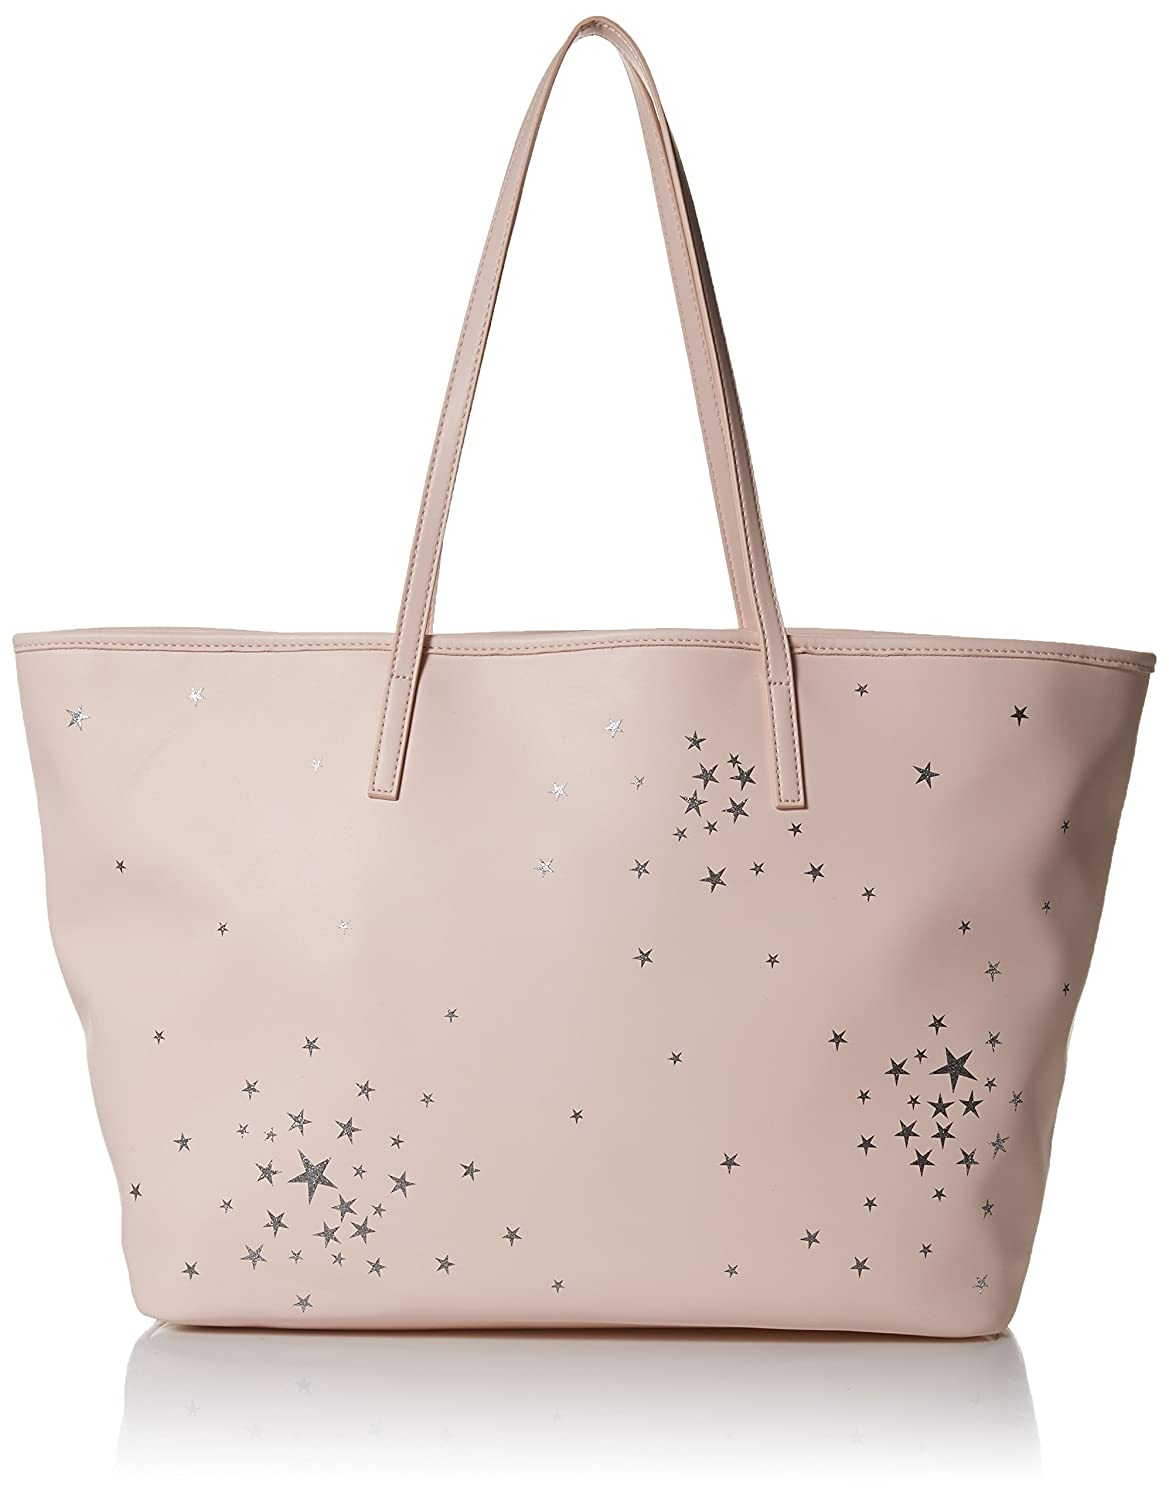 Dear Drew by Drew Barrymore on the Go Vegan Leather Celestial Tote Bag Perfect Pink DR163